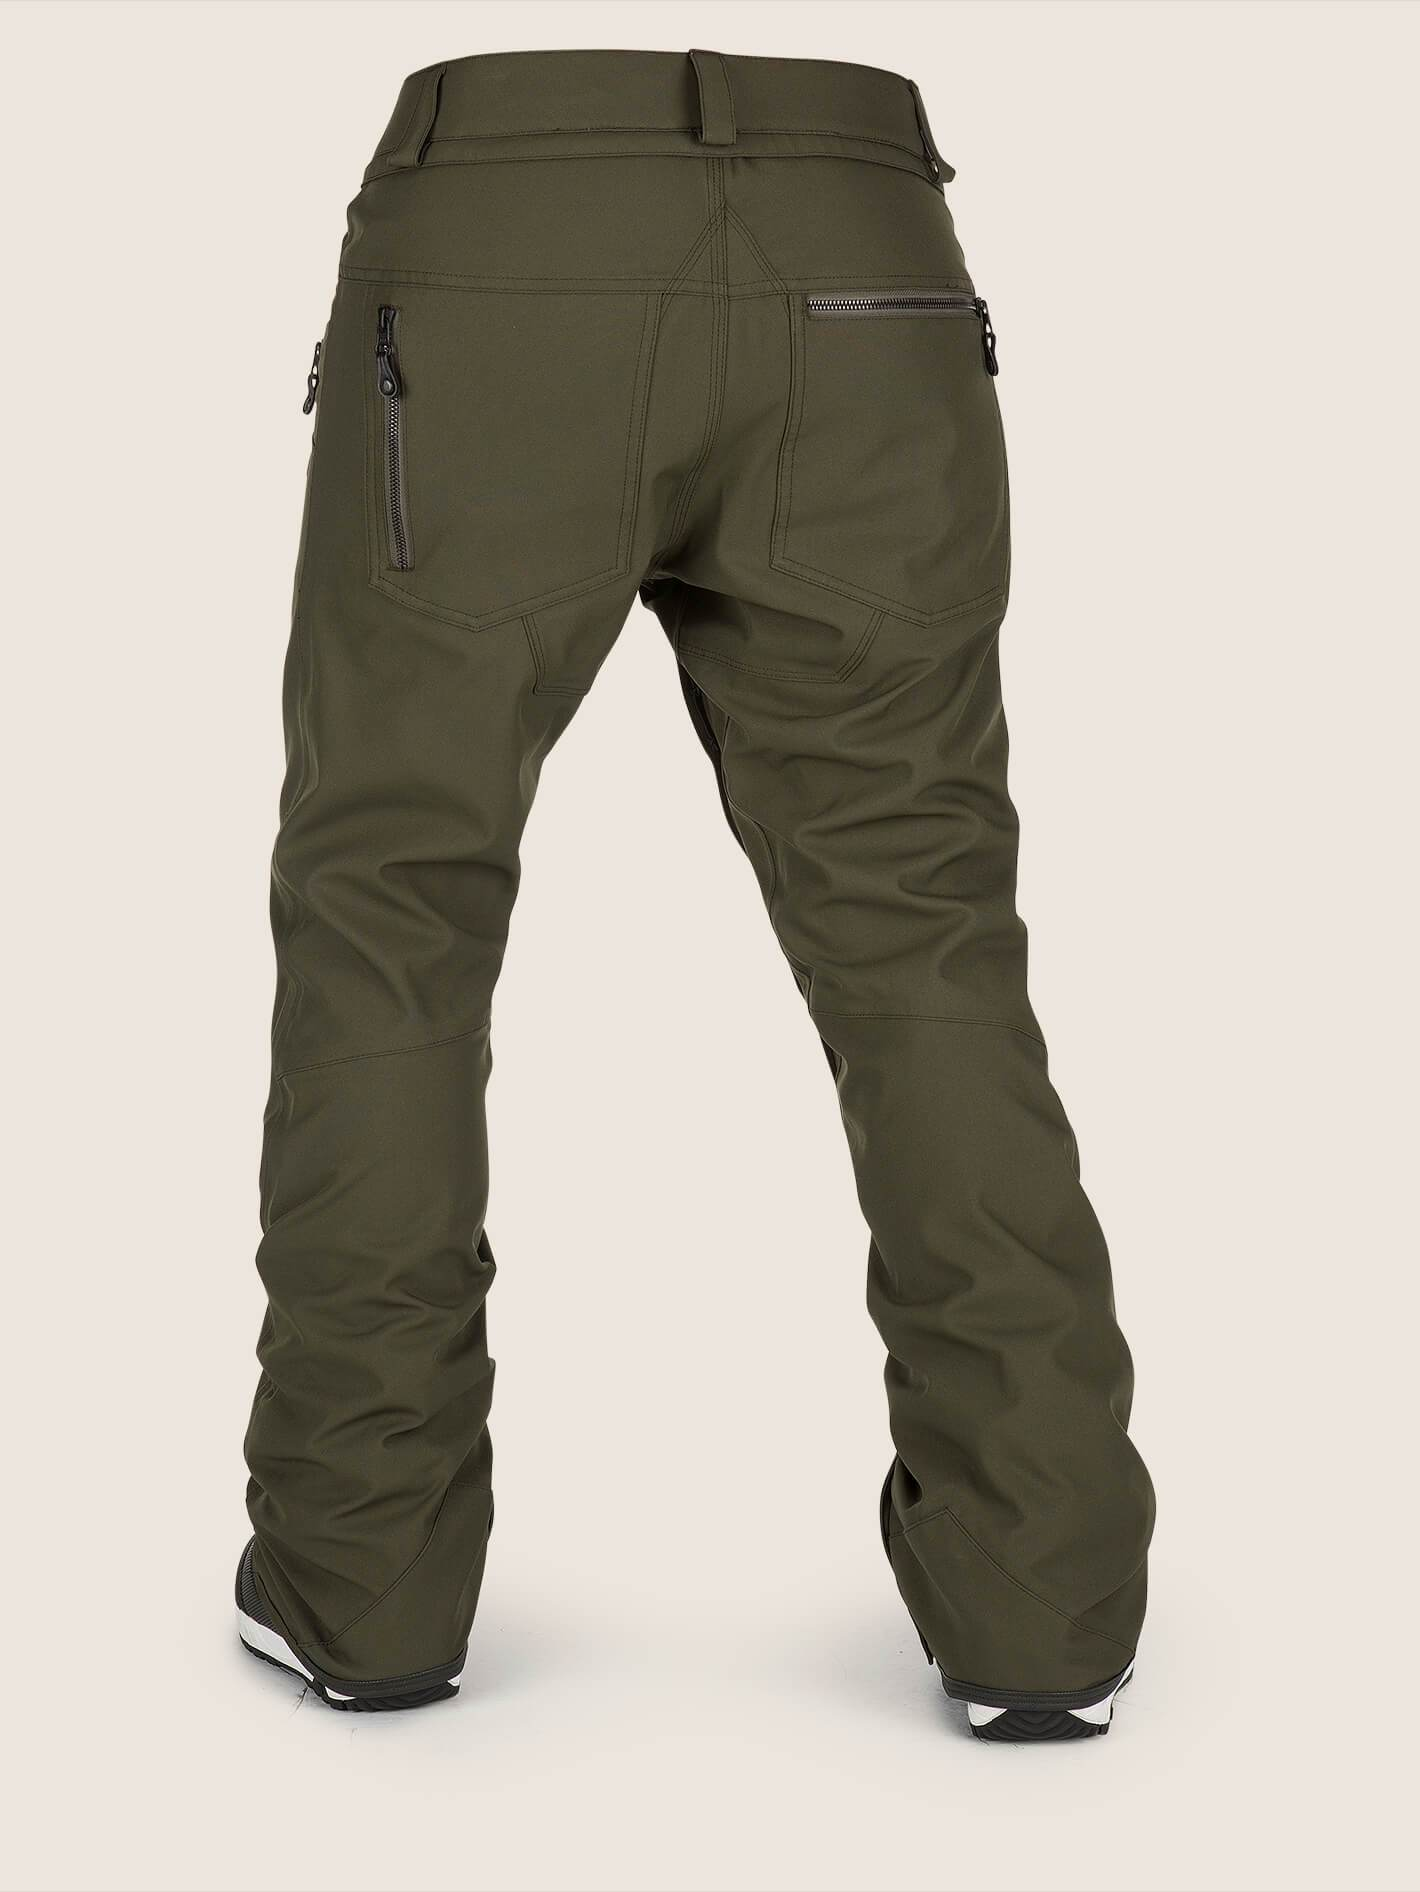 Iron Stretch Pant Snowboarding | Volcom Outdoor – Volcom